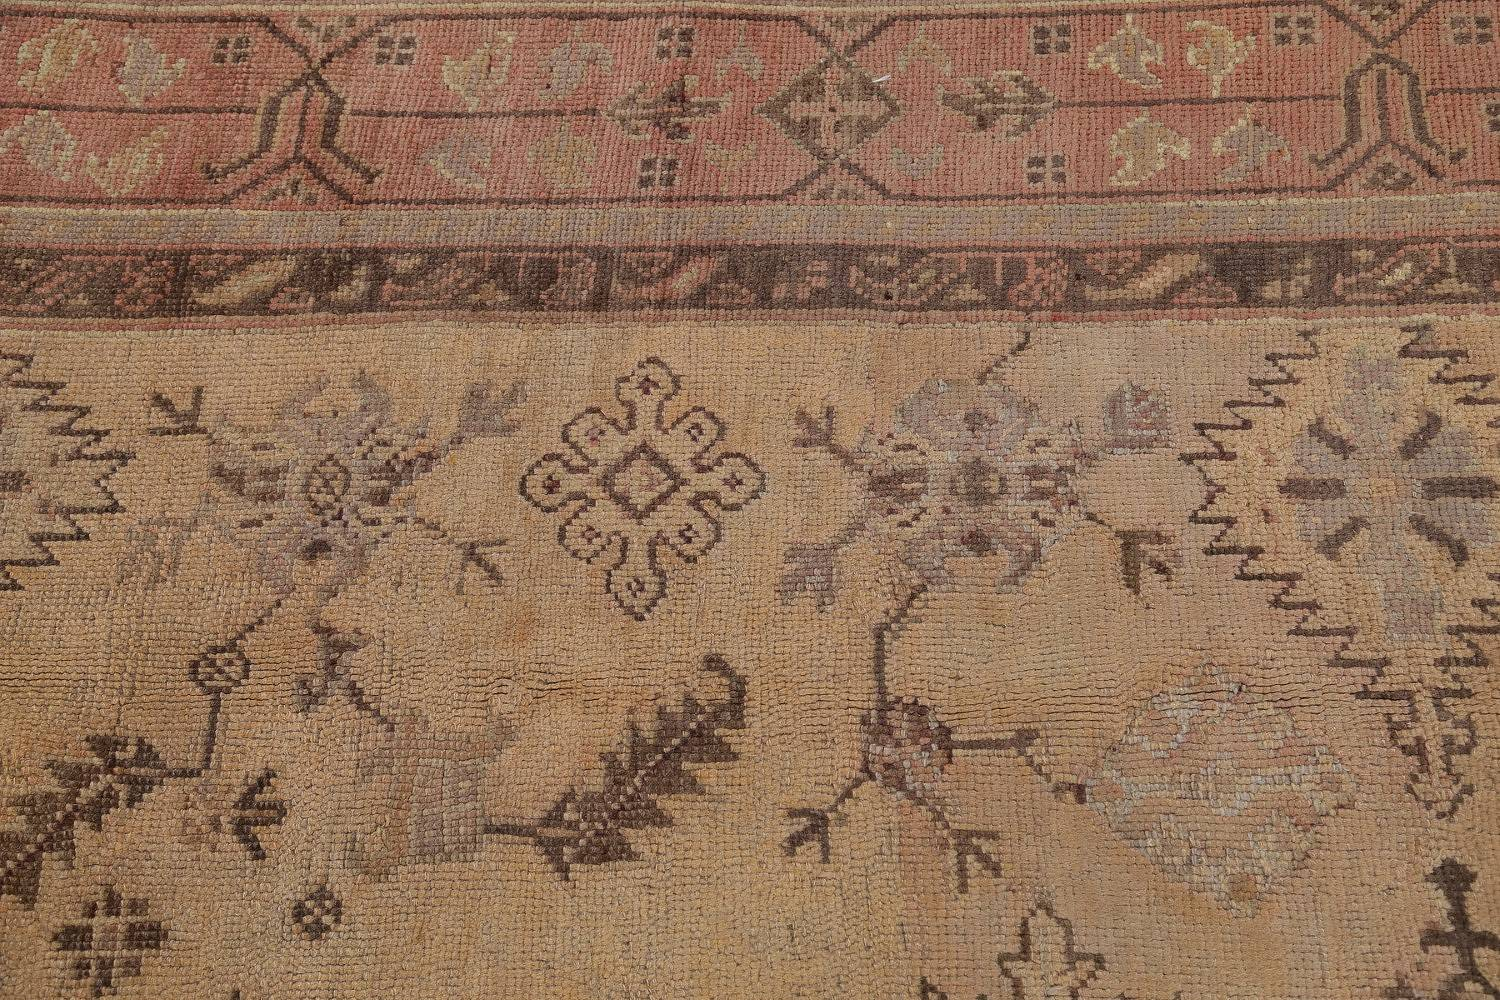 Pre-1900 Antique All-Over Geometric Muted Color Oushak Turkish Area Rug 10x13 image 15